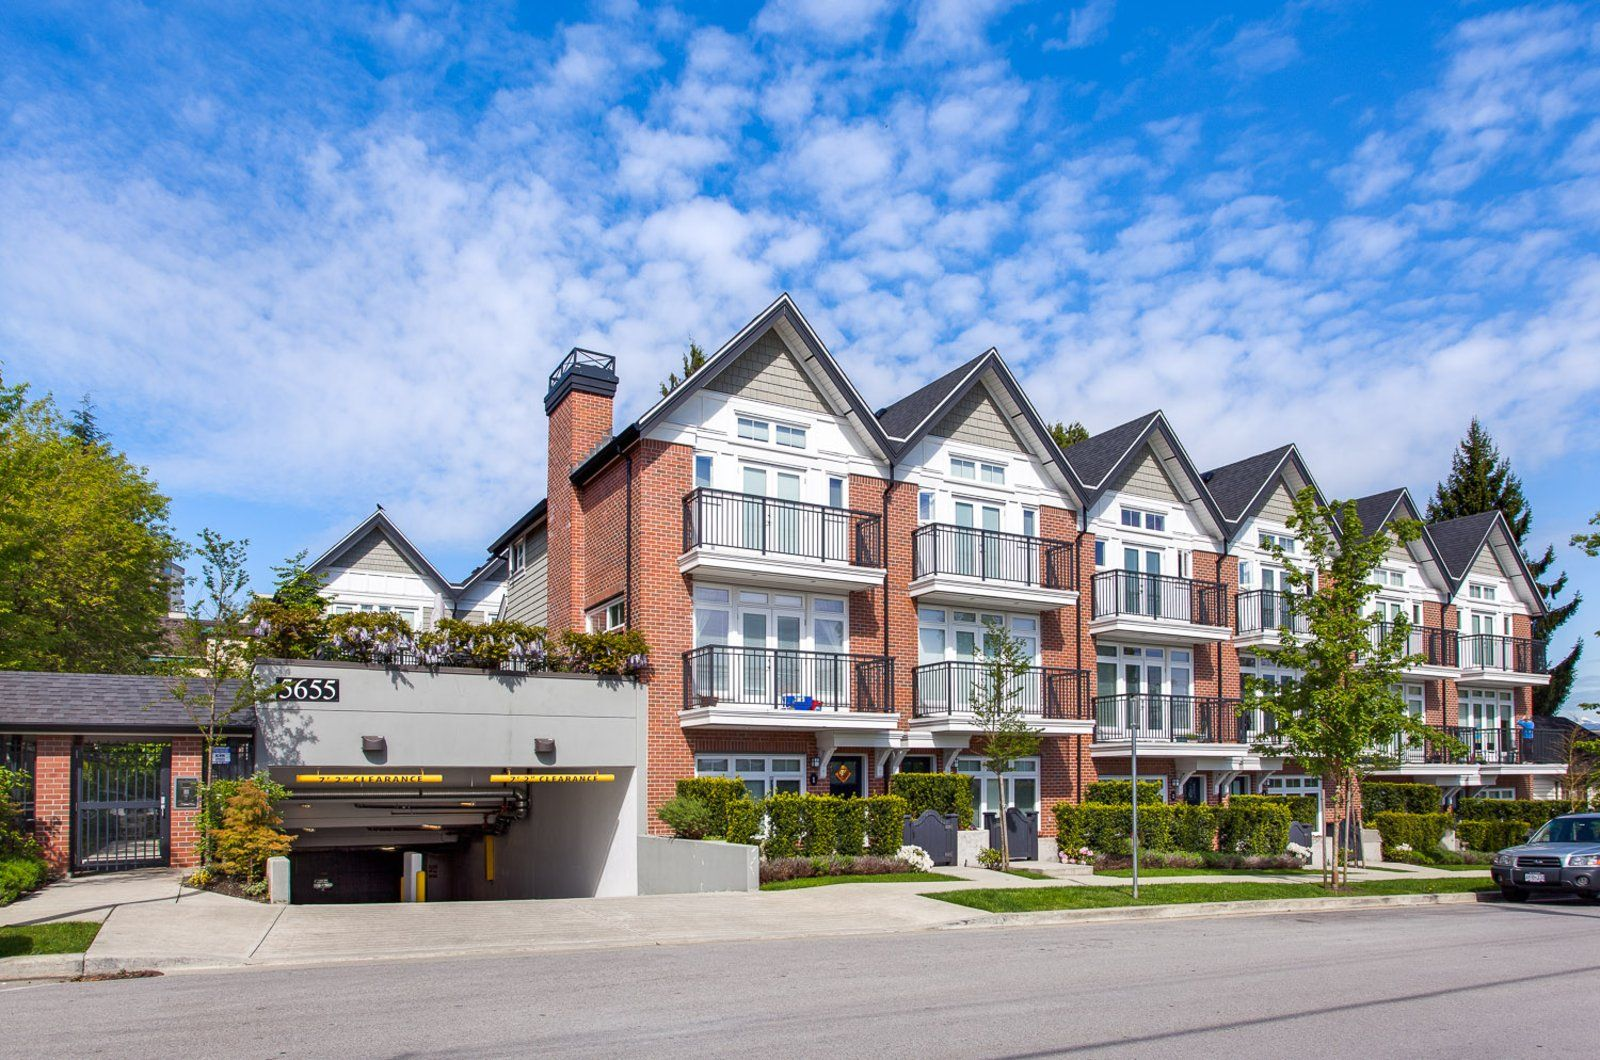 Main Photo: 5655 chaffey Avenue in Burnaby: Metrotown Townhouse for rent (Burnaby South)  : MLS®# AR154